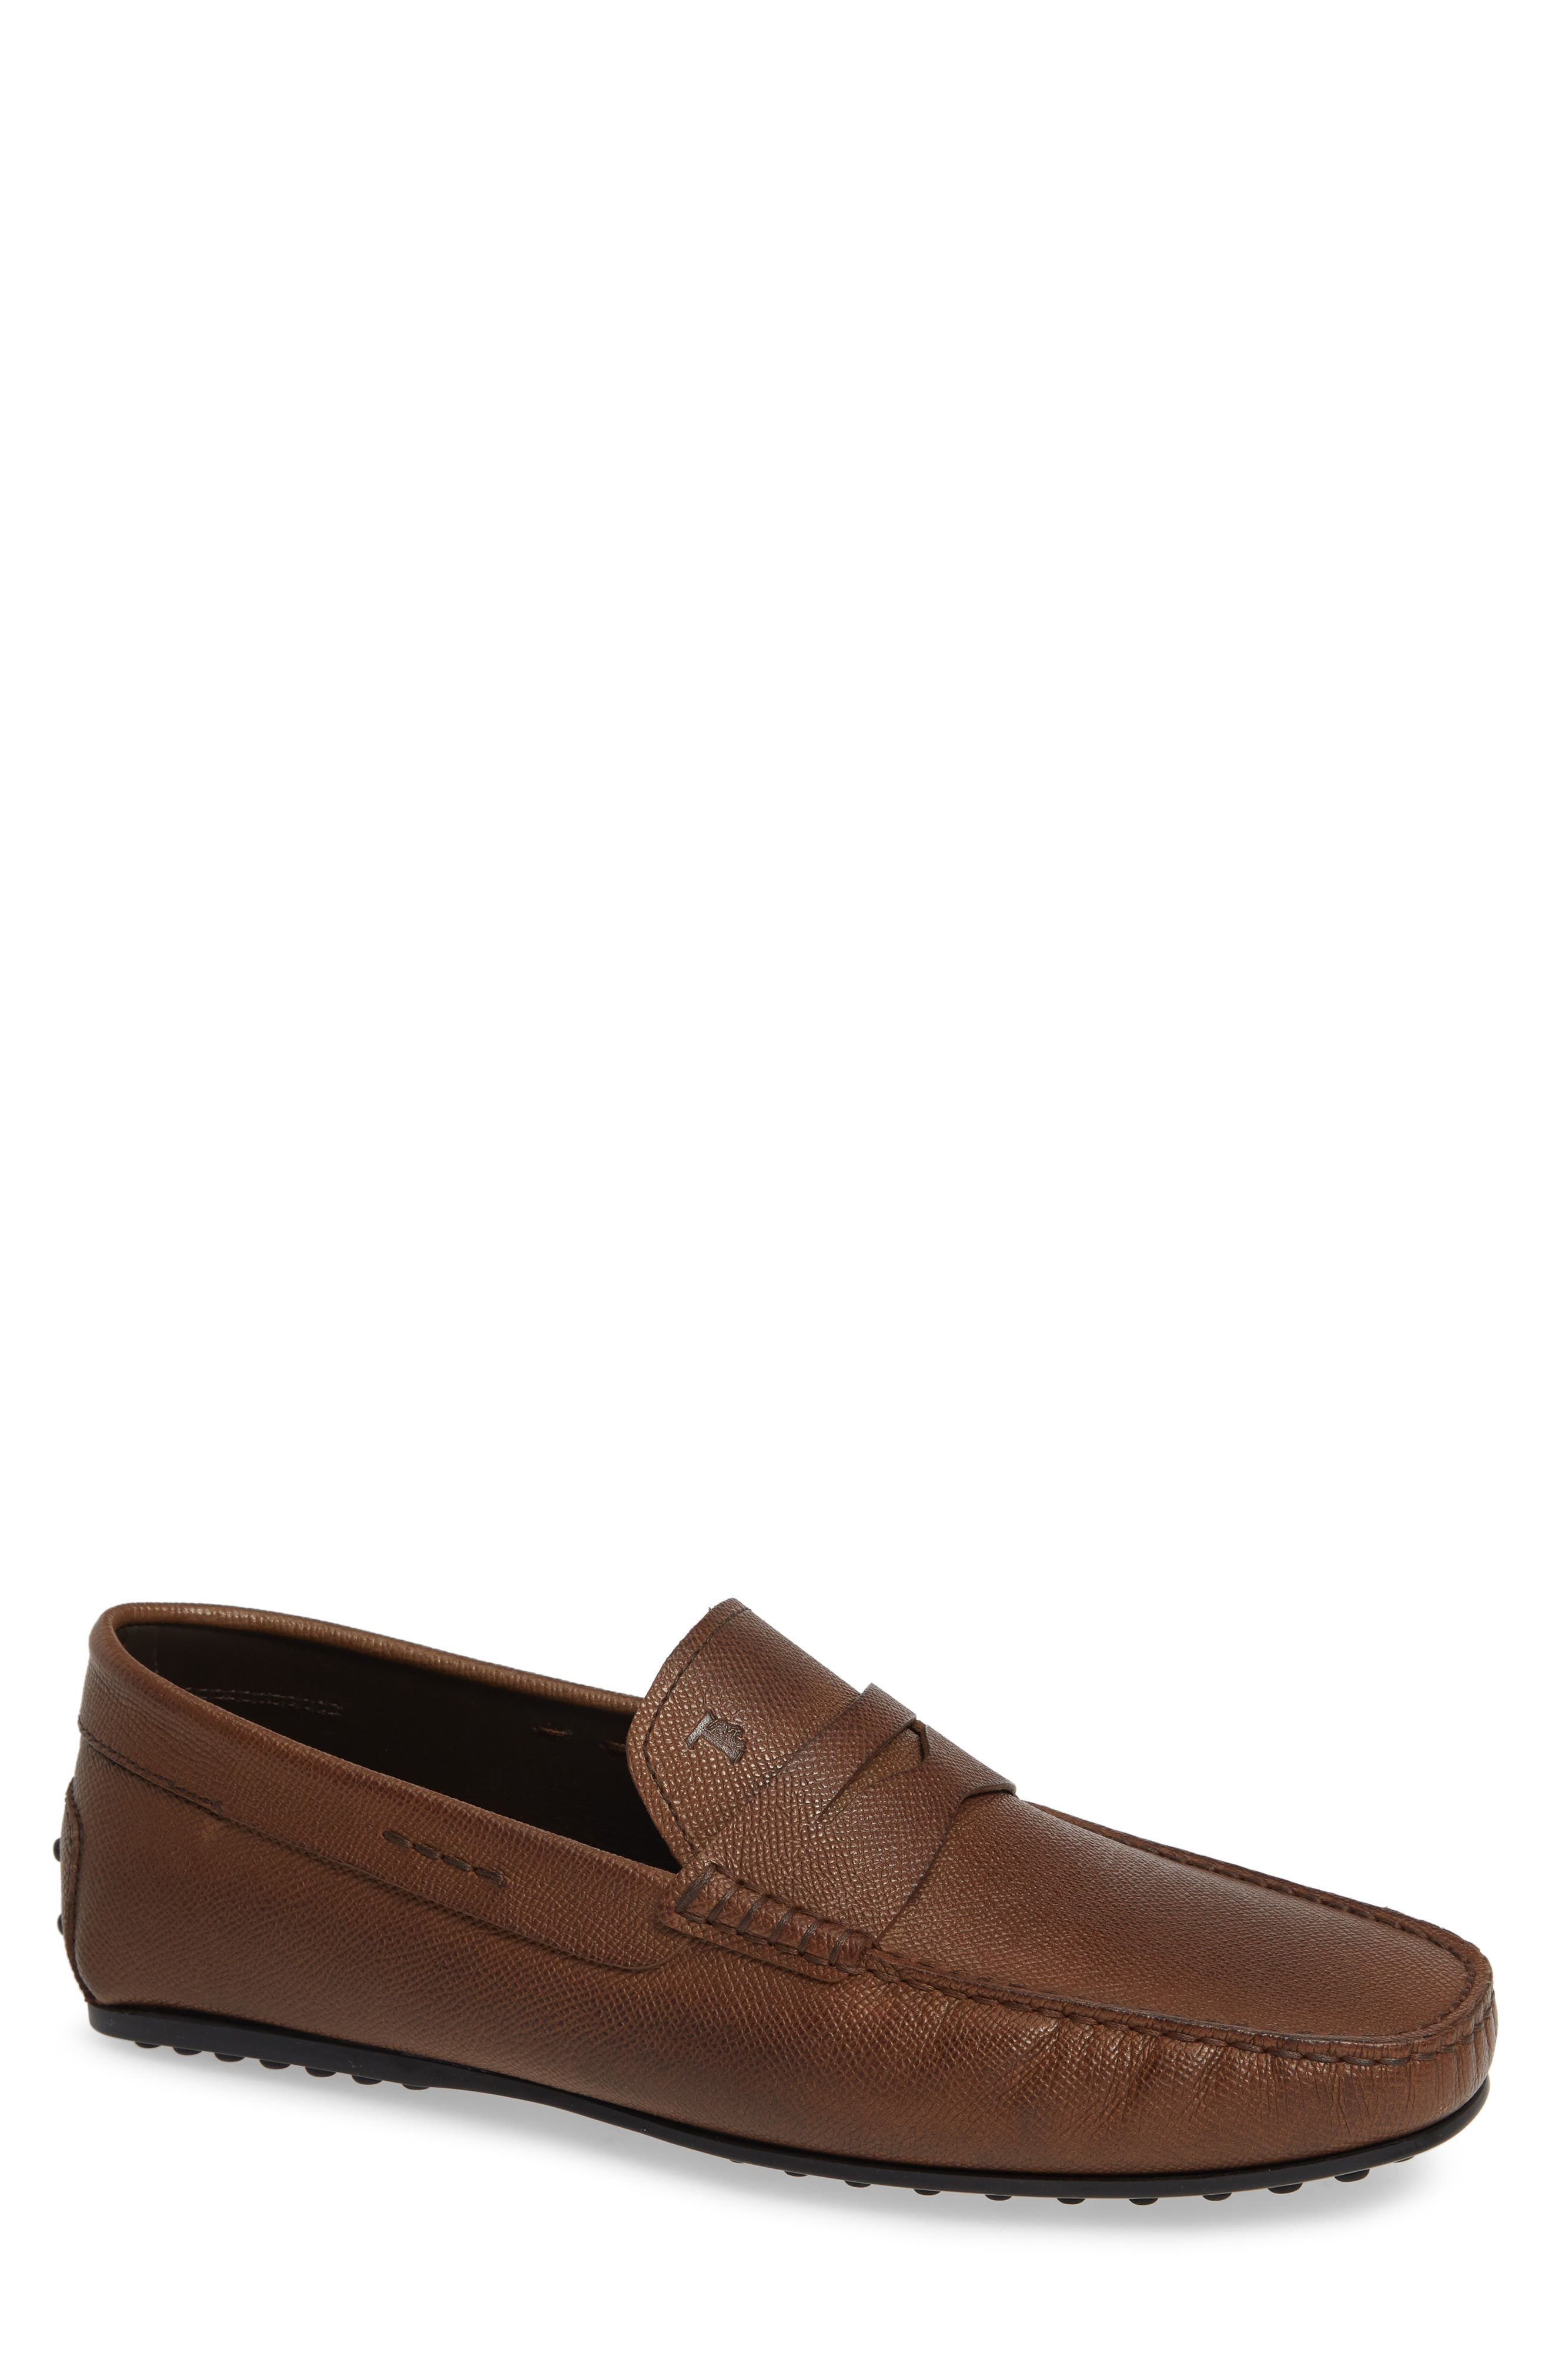 TOD'S,                             'City' Penny Driving Shoe,                             Main thumbnail 1, color,                             BROWN